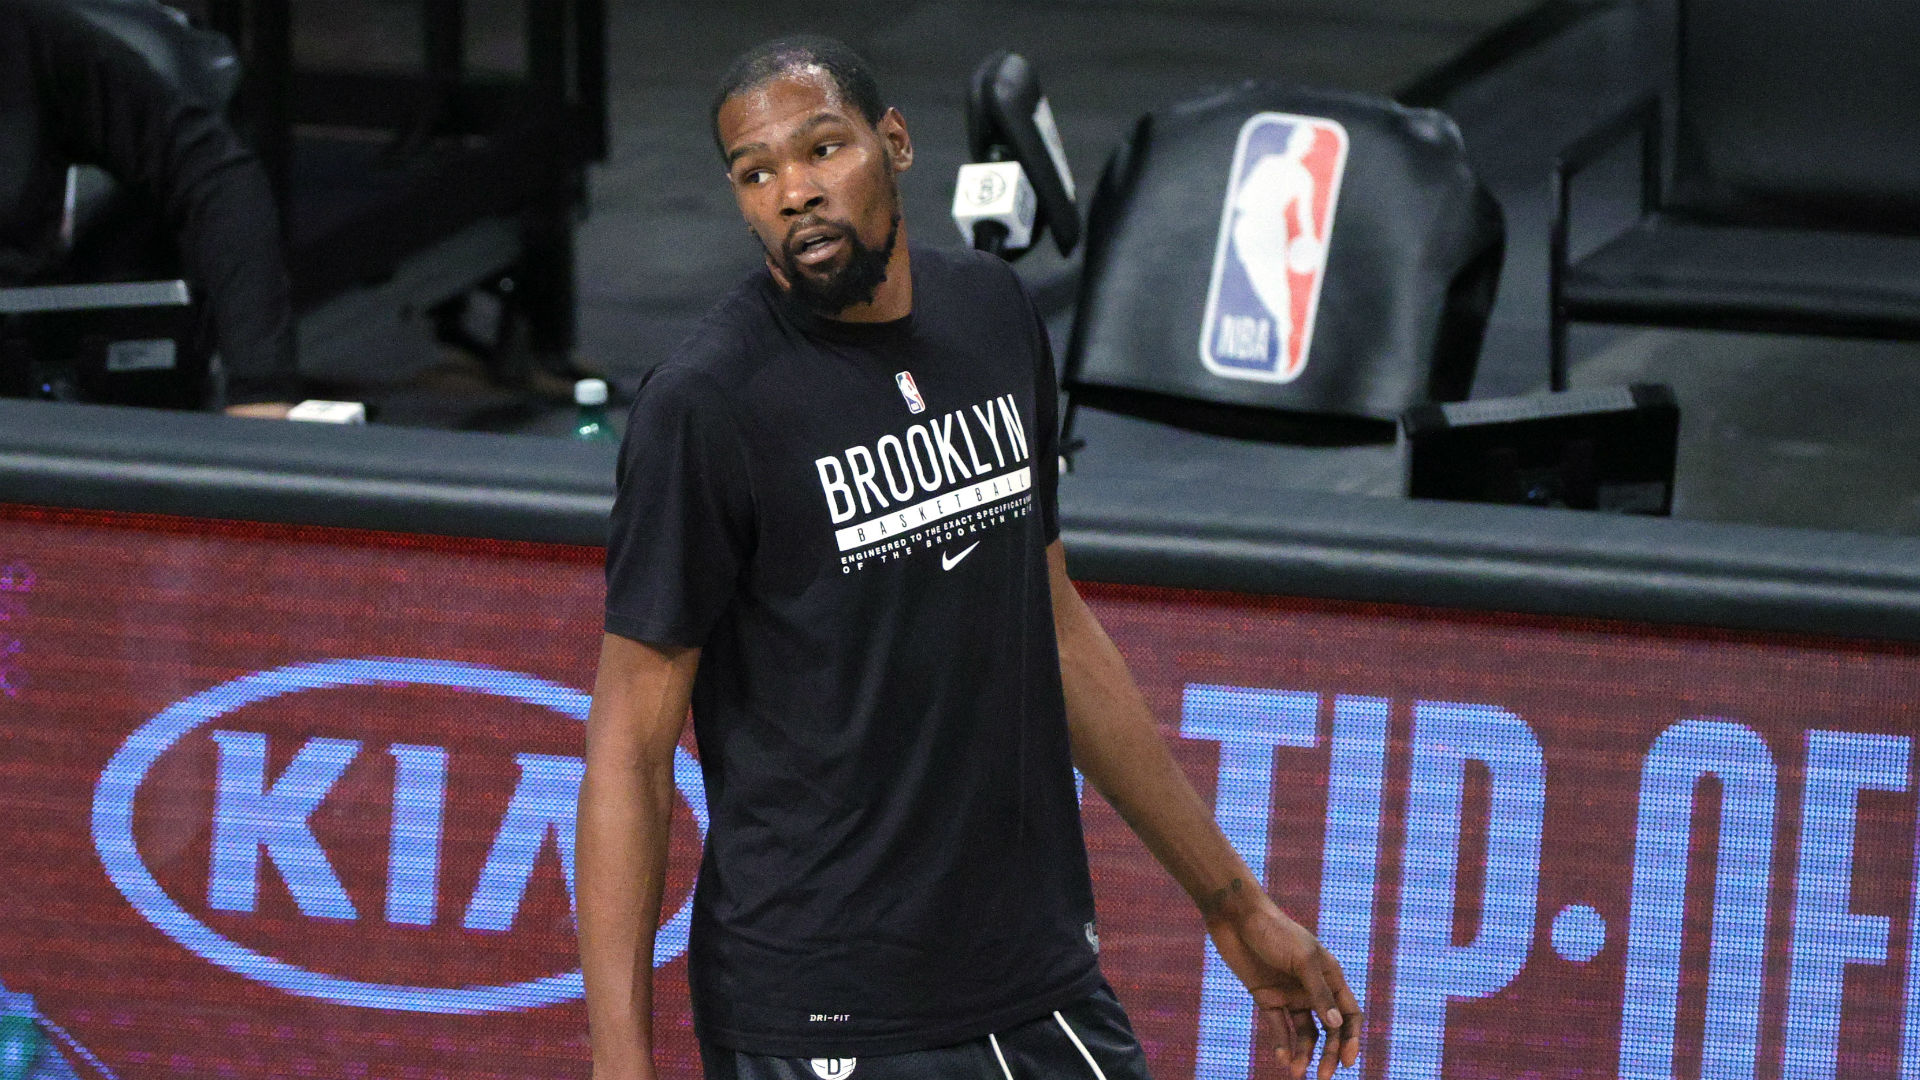 Nets' Kevin Durant removed midgame under NBA safety protocol; star blasts league's 'wack' statement